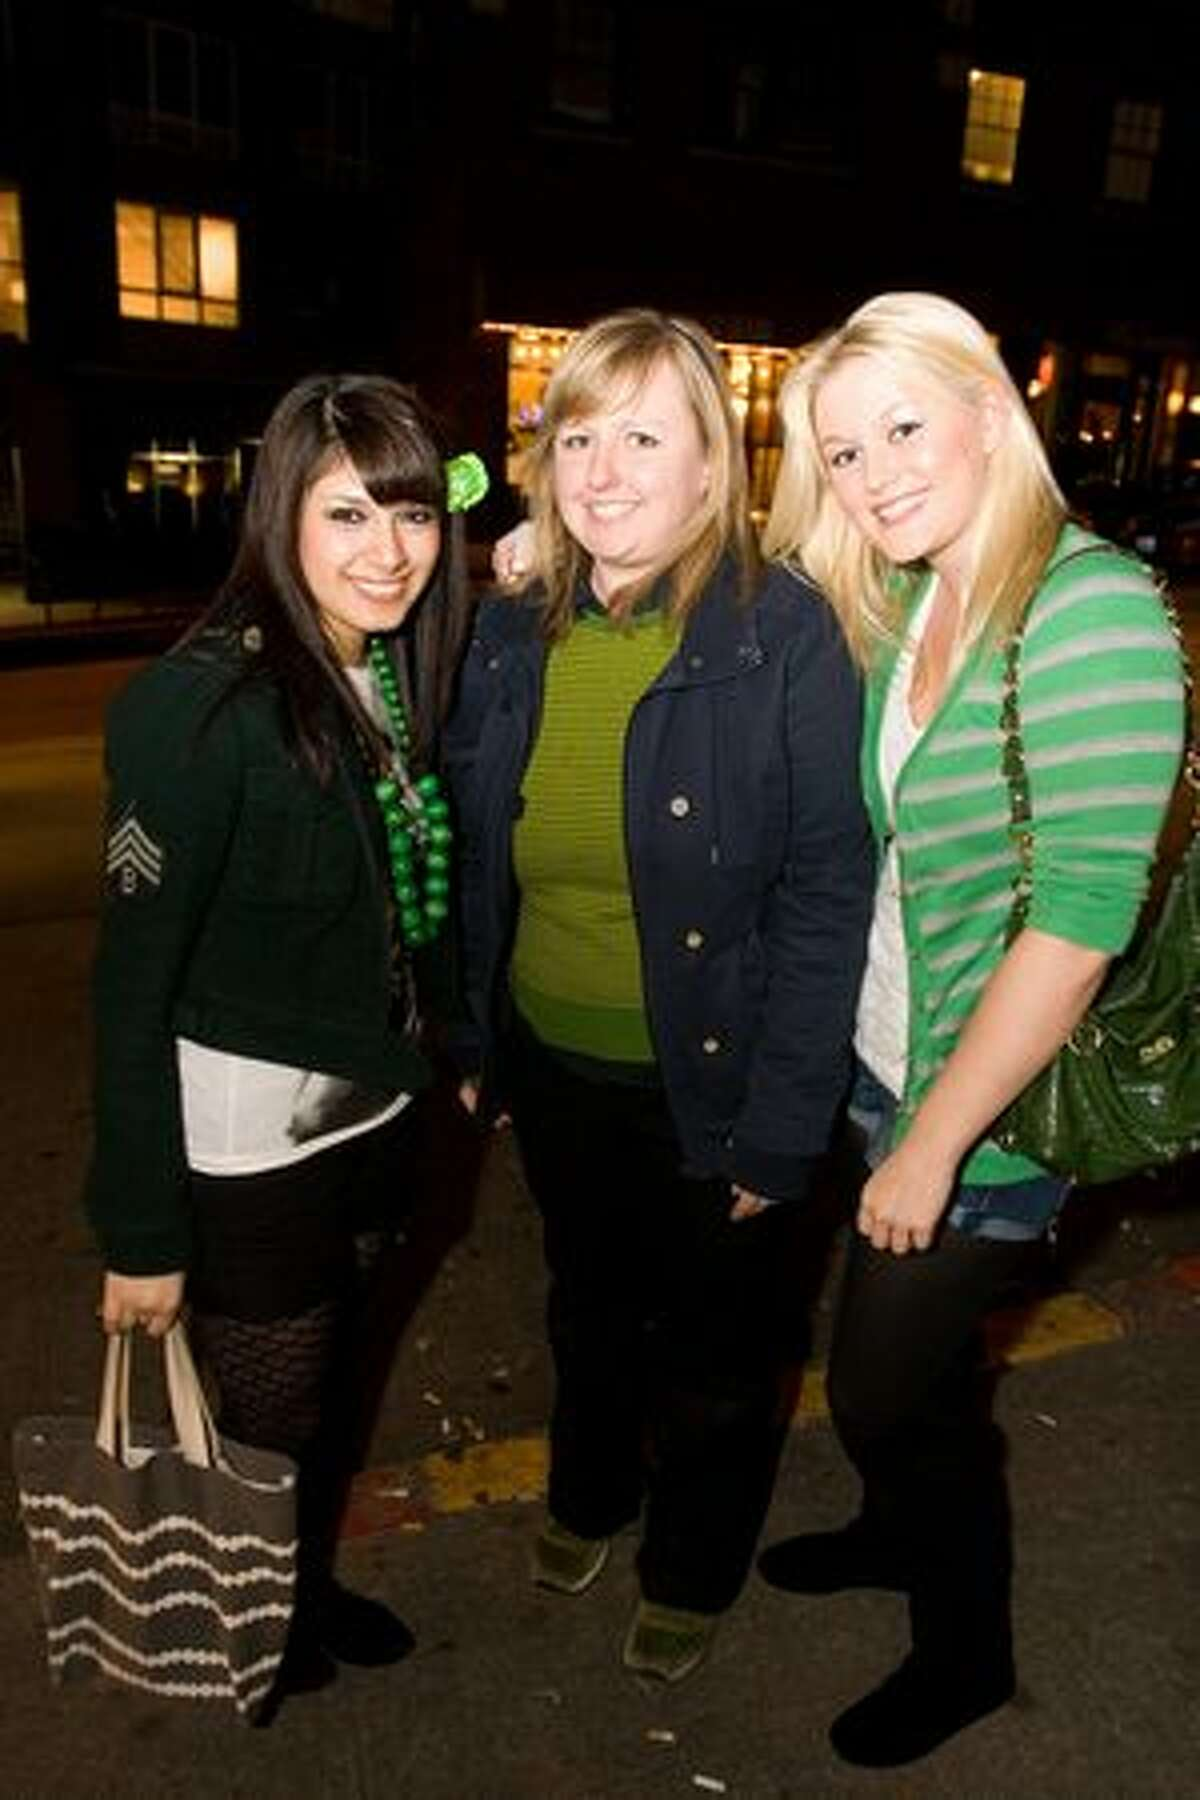 Patrons celebrate St. Patrick's Day at Clever Dunne's Irish pub in Capitol Hill.